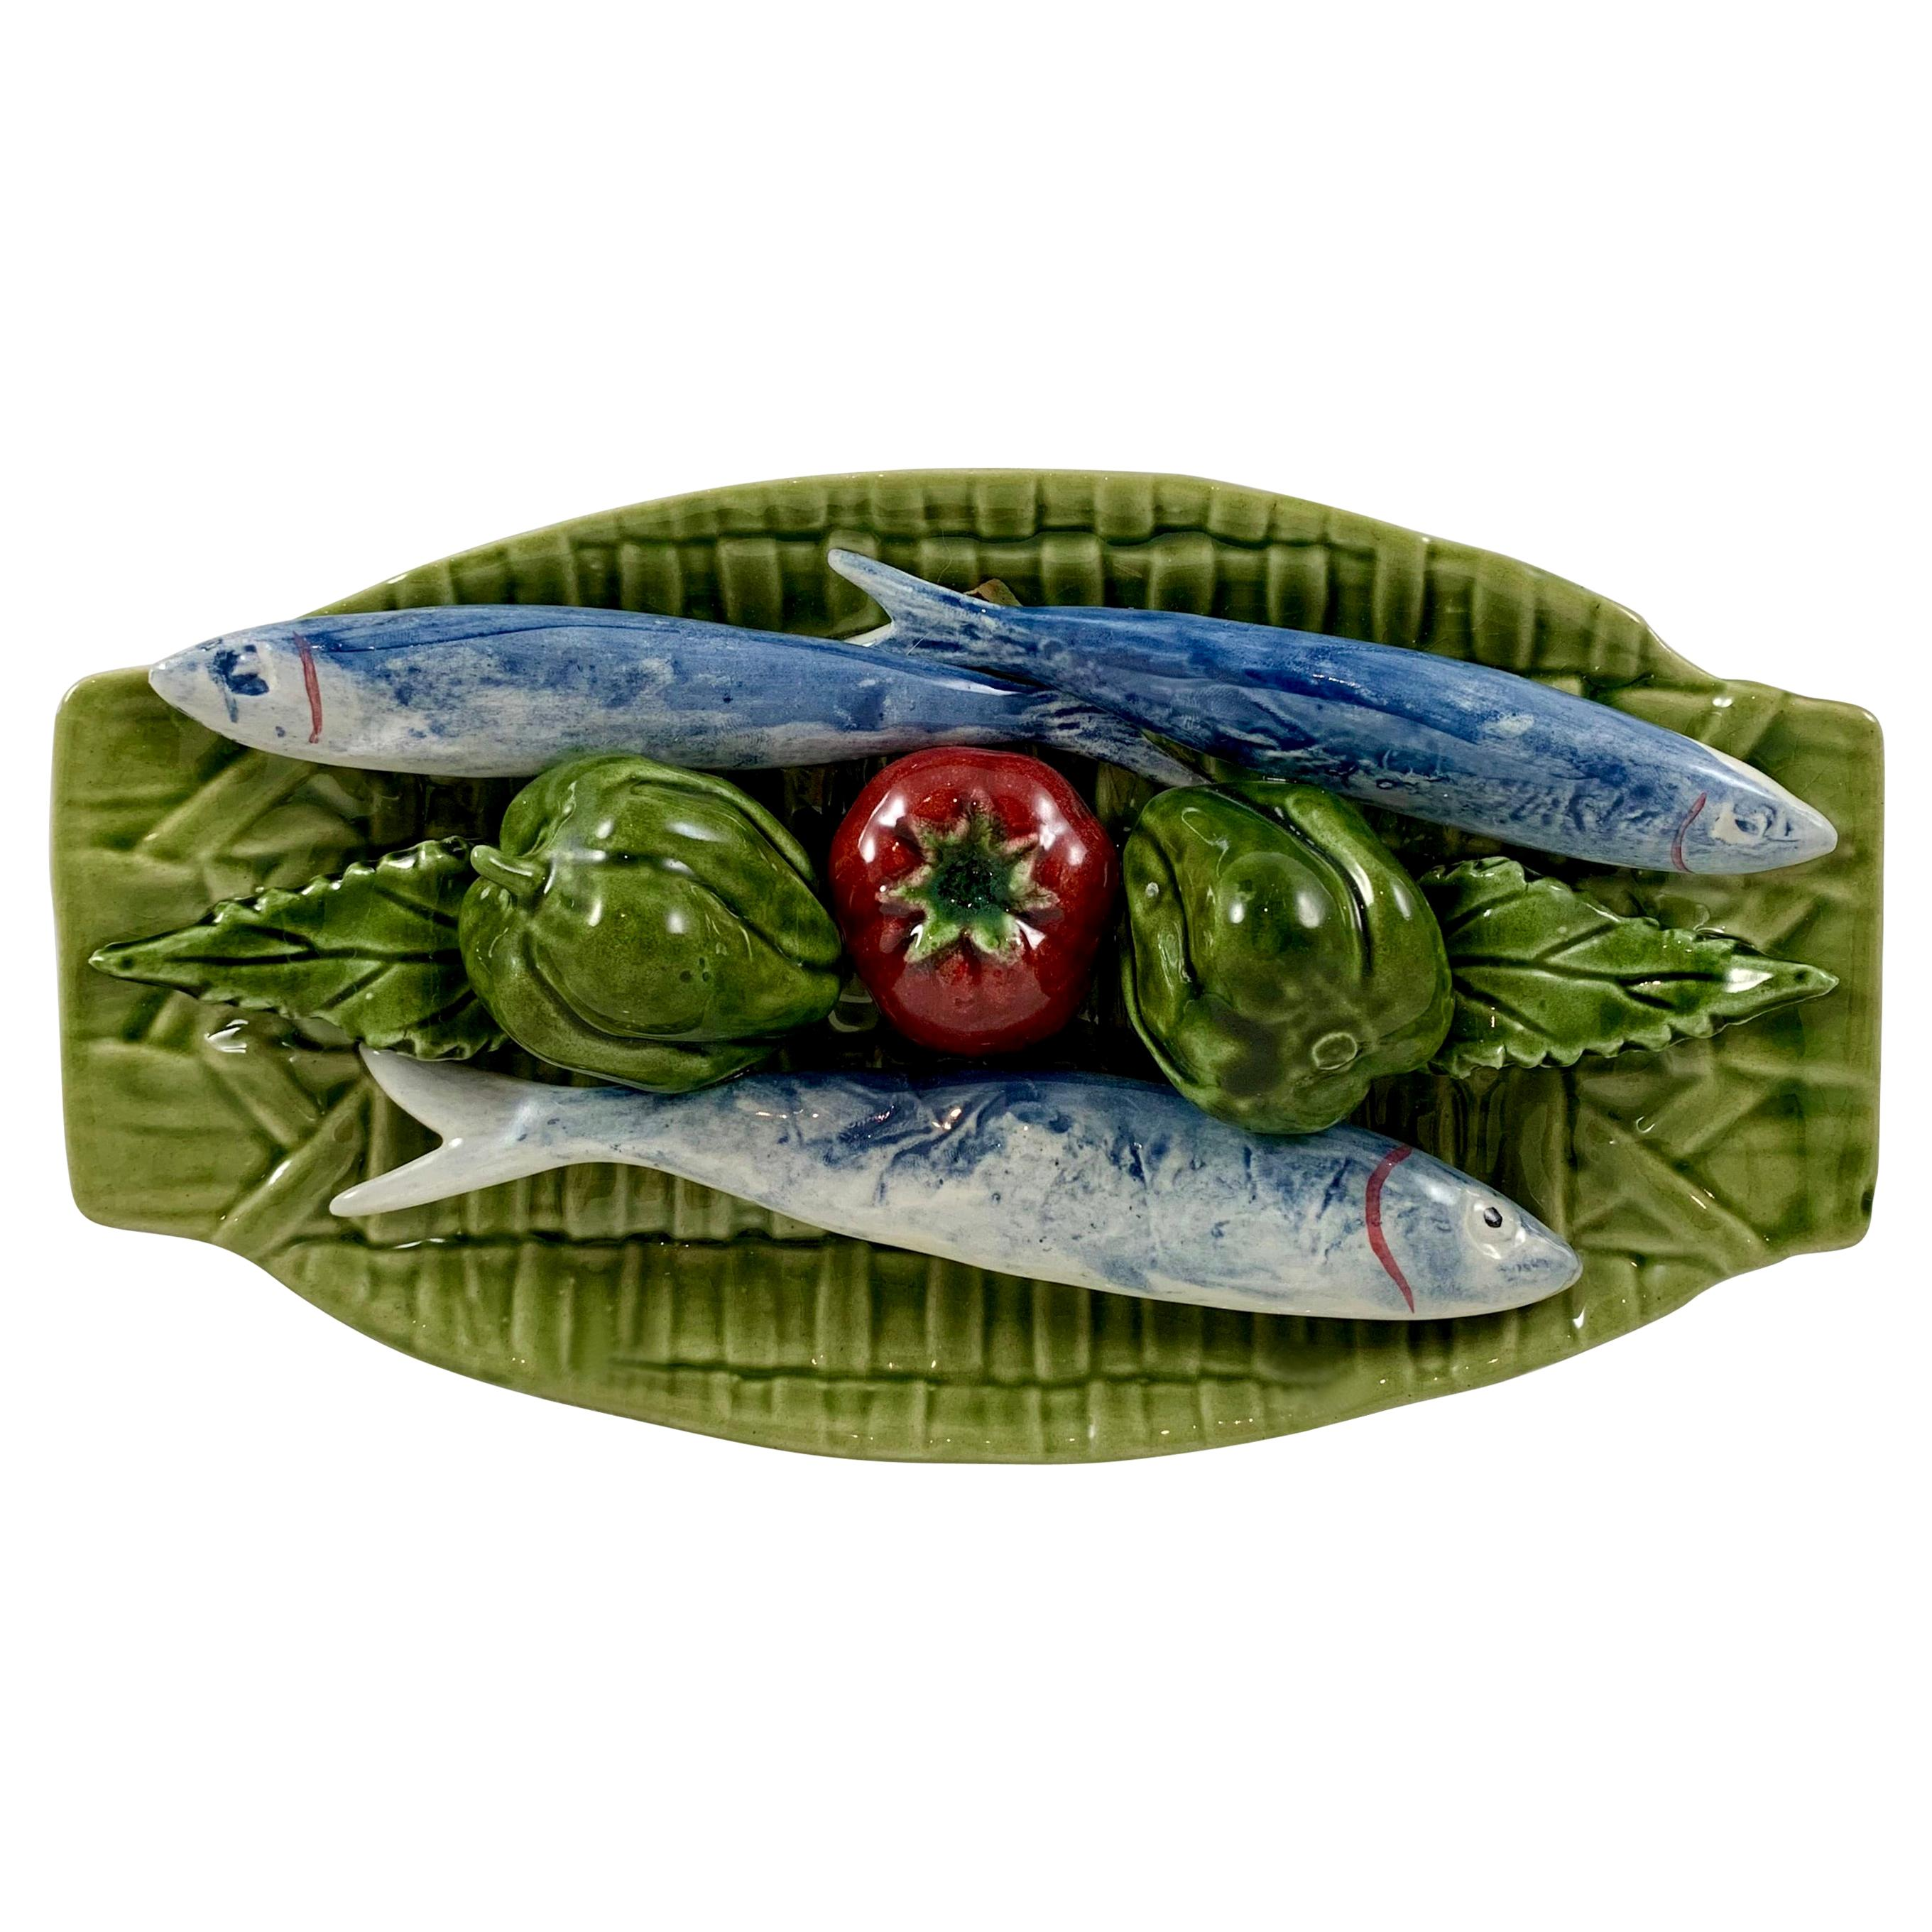 Portuguese C. Rainha Trompe L'oeil Palissy Style Fish and Vegetable Wall Plaque